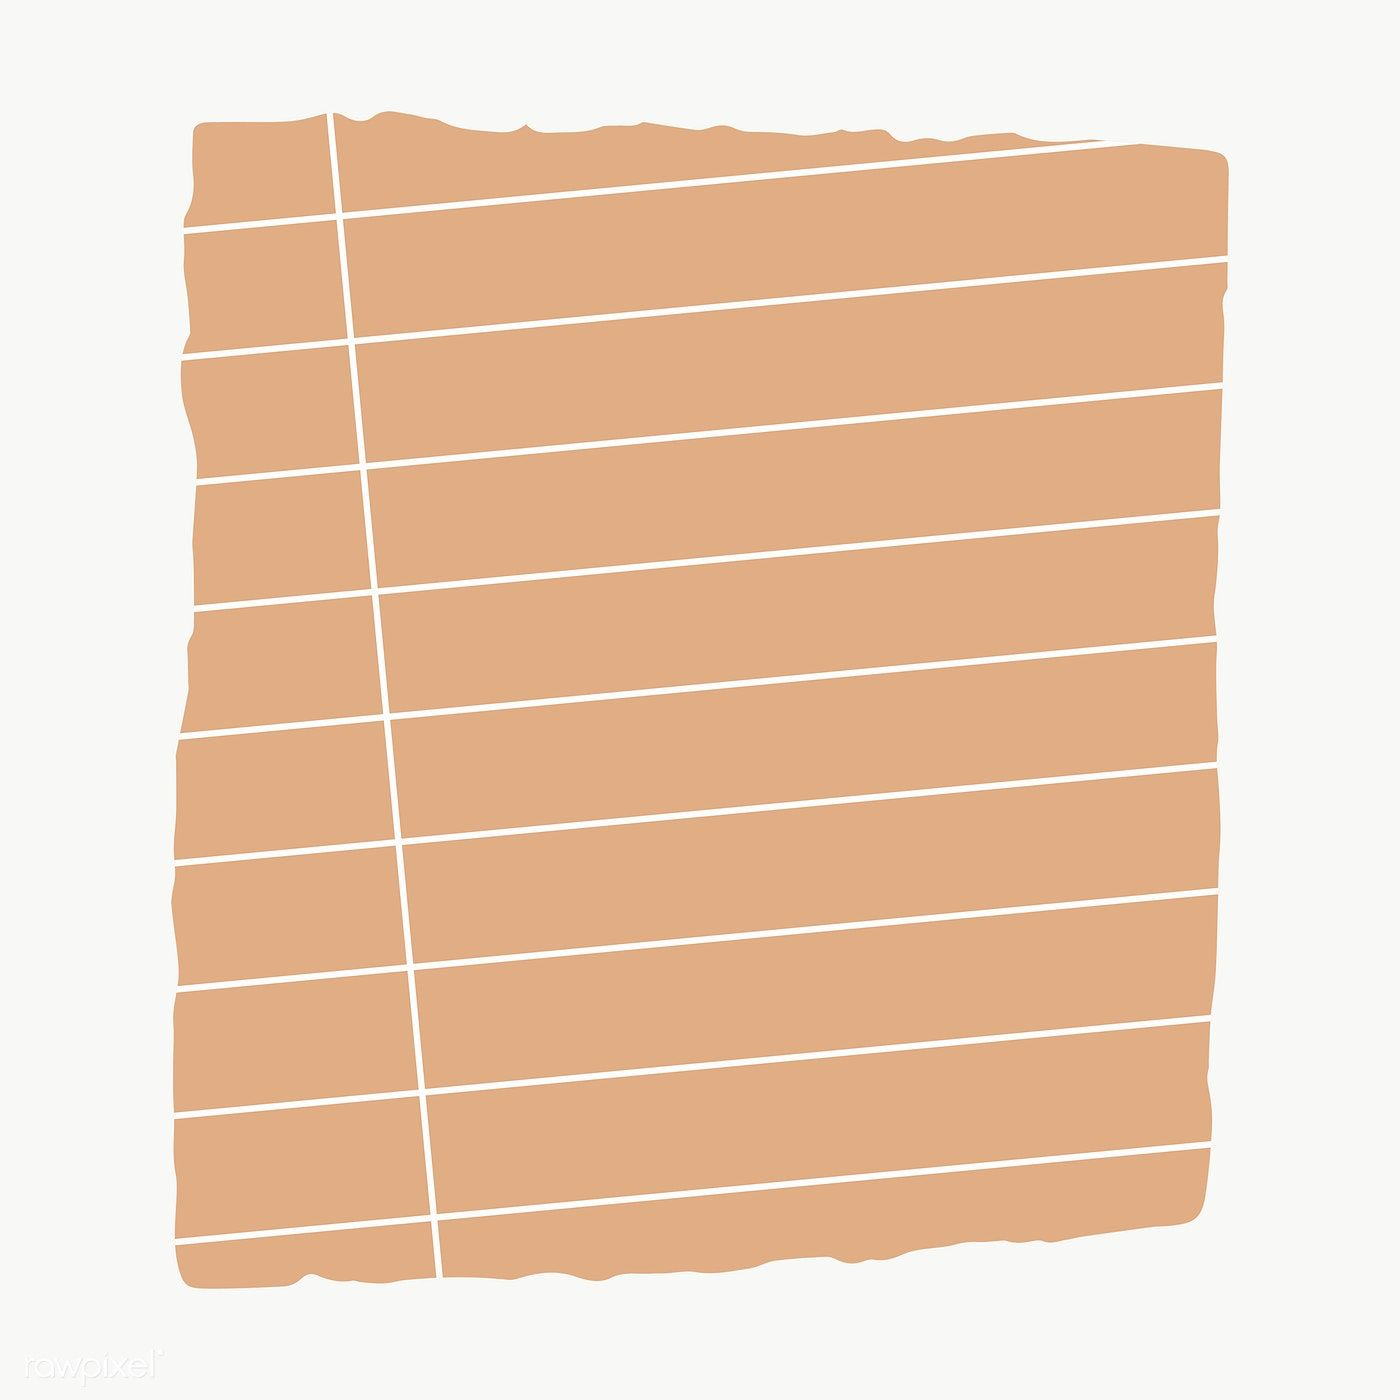 Brown Square Paper Note Social Ads Template Transparent Png Free Image By Rawpixel Com Manotang Note Paper Aesthetic Template Square Paper